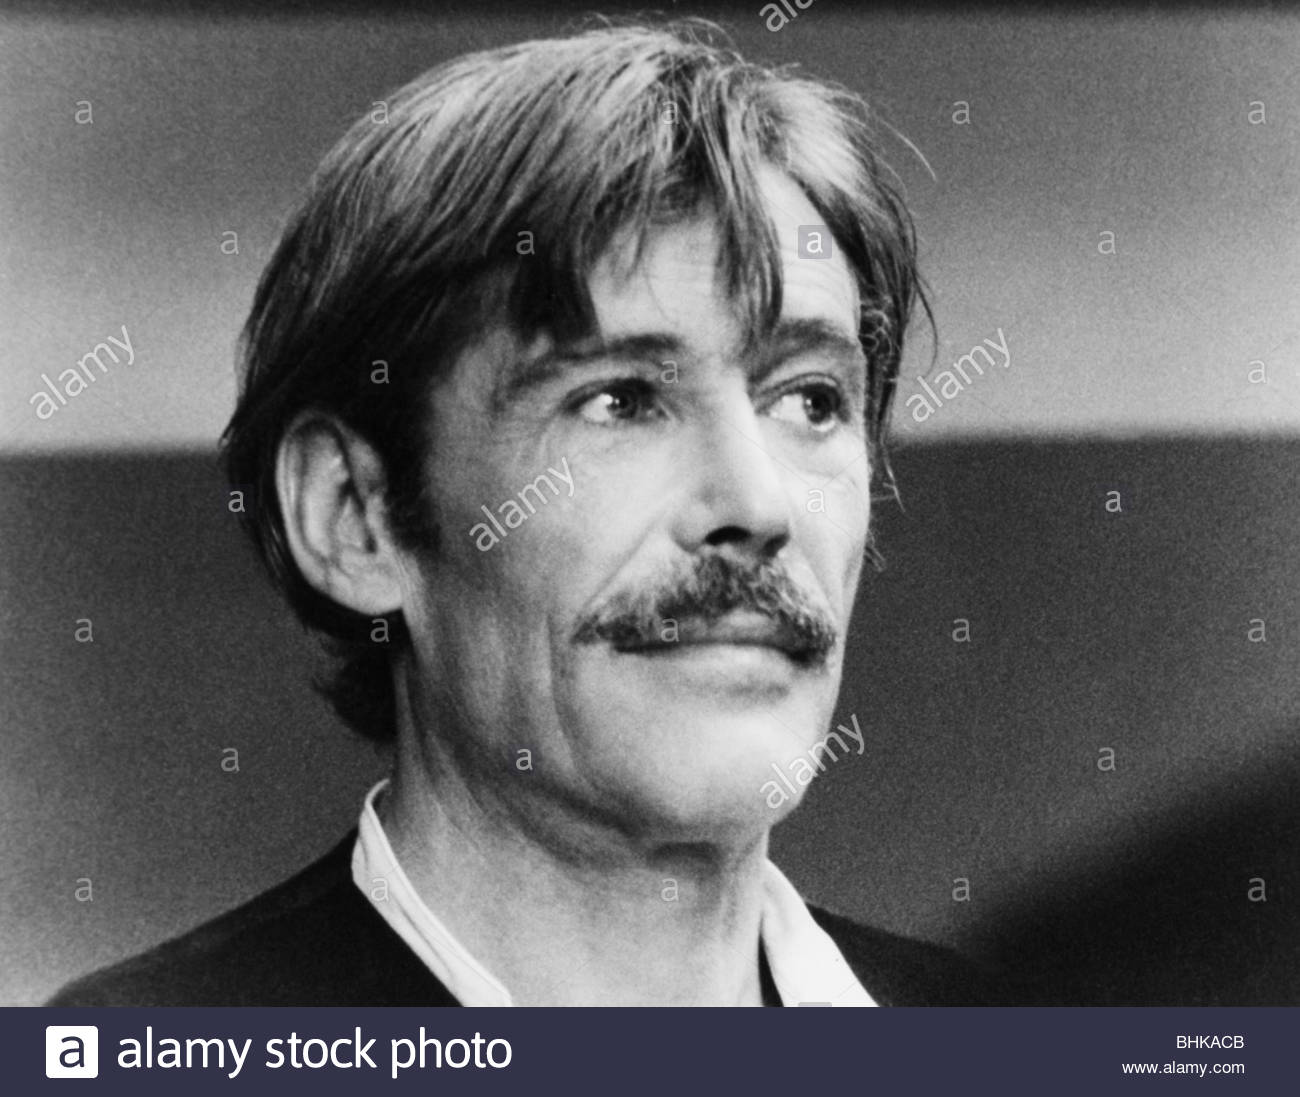 O'Toole, Peter , 2.8.1932 - 14.12.2014, irish actor, portrait, in the TV series 'Strumpet City', 1980, - Stock Image